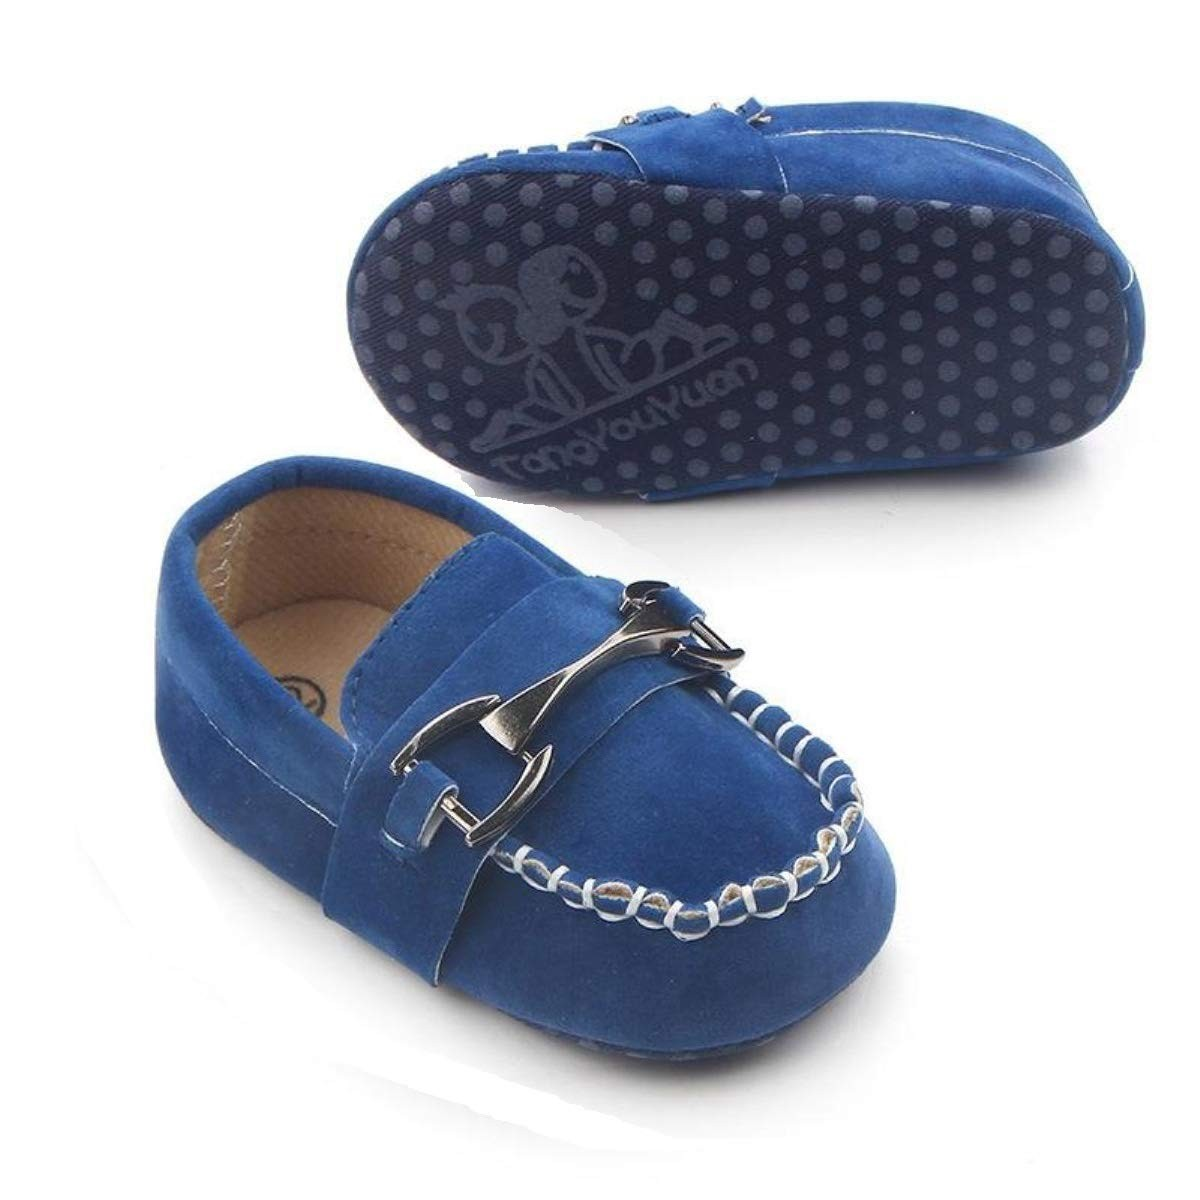 Loofers shoes For Baby Boy random colour